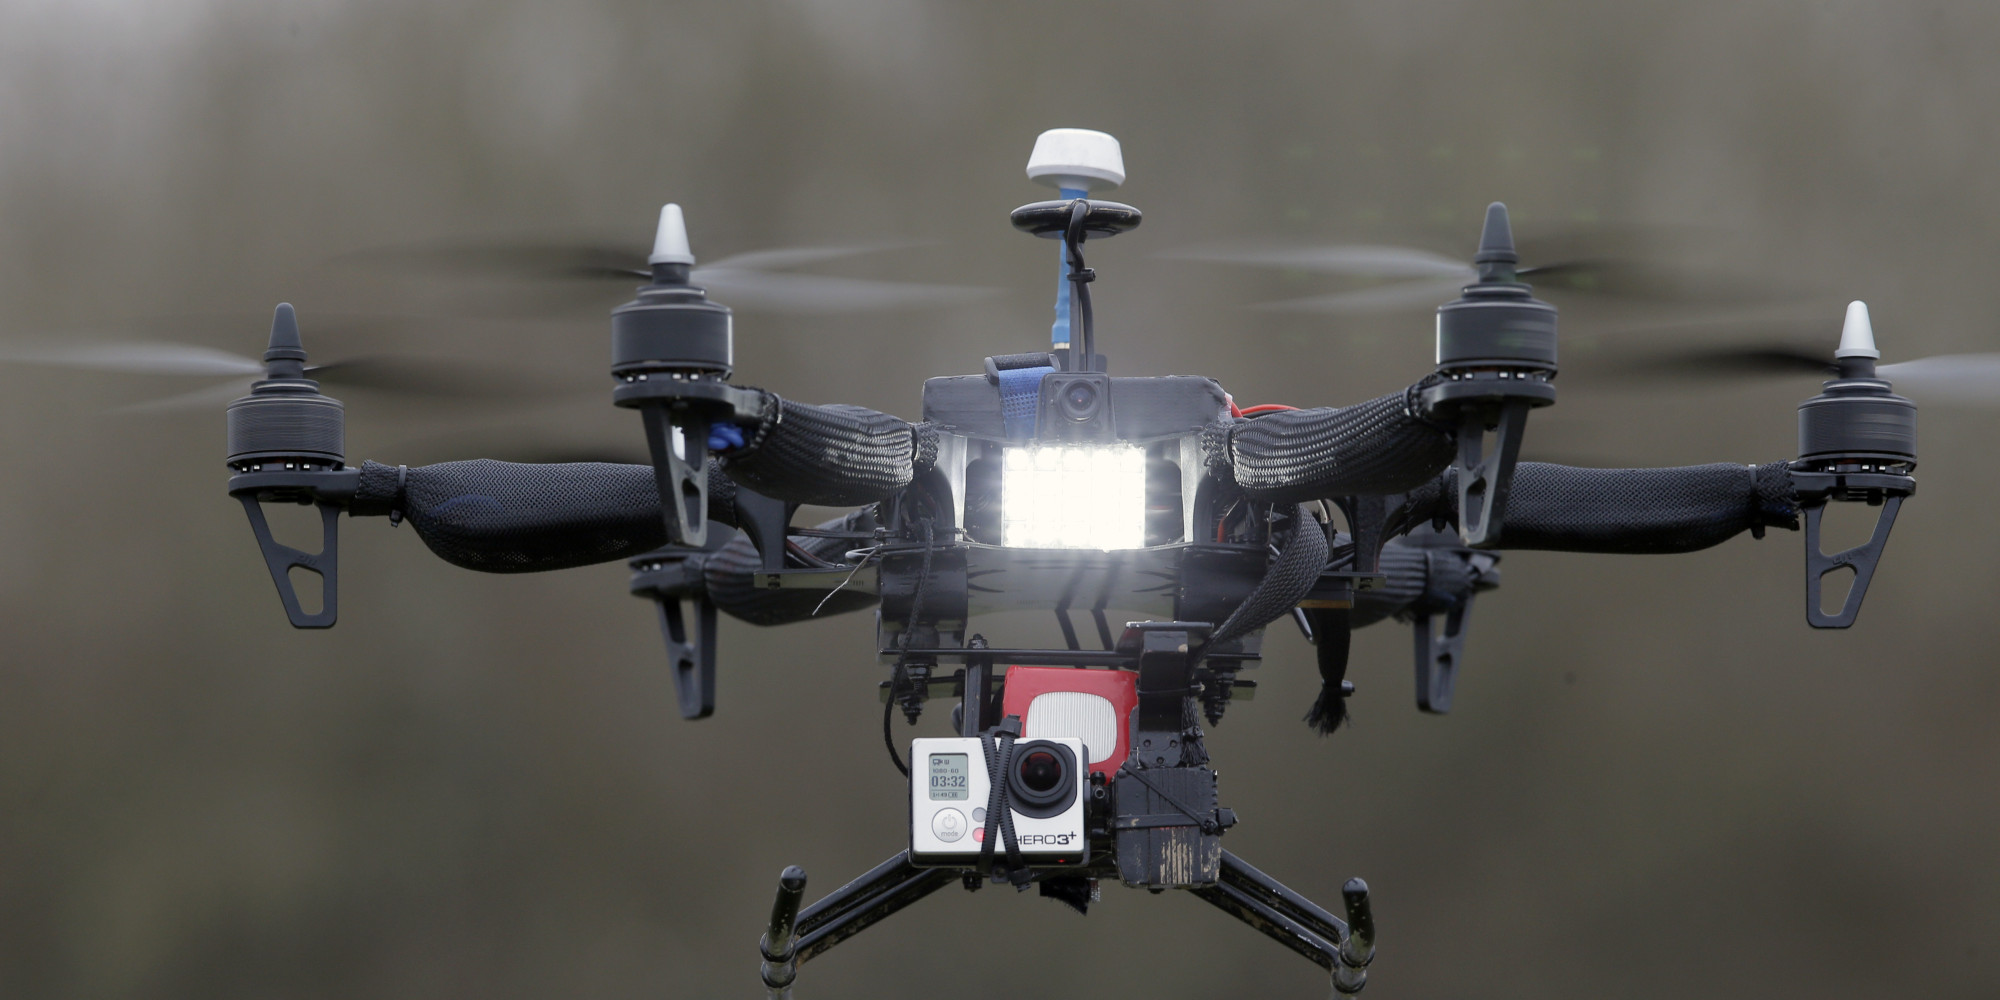 Amazon Gets Green Light From US Regulators For New Drone Tests